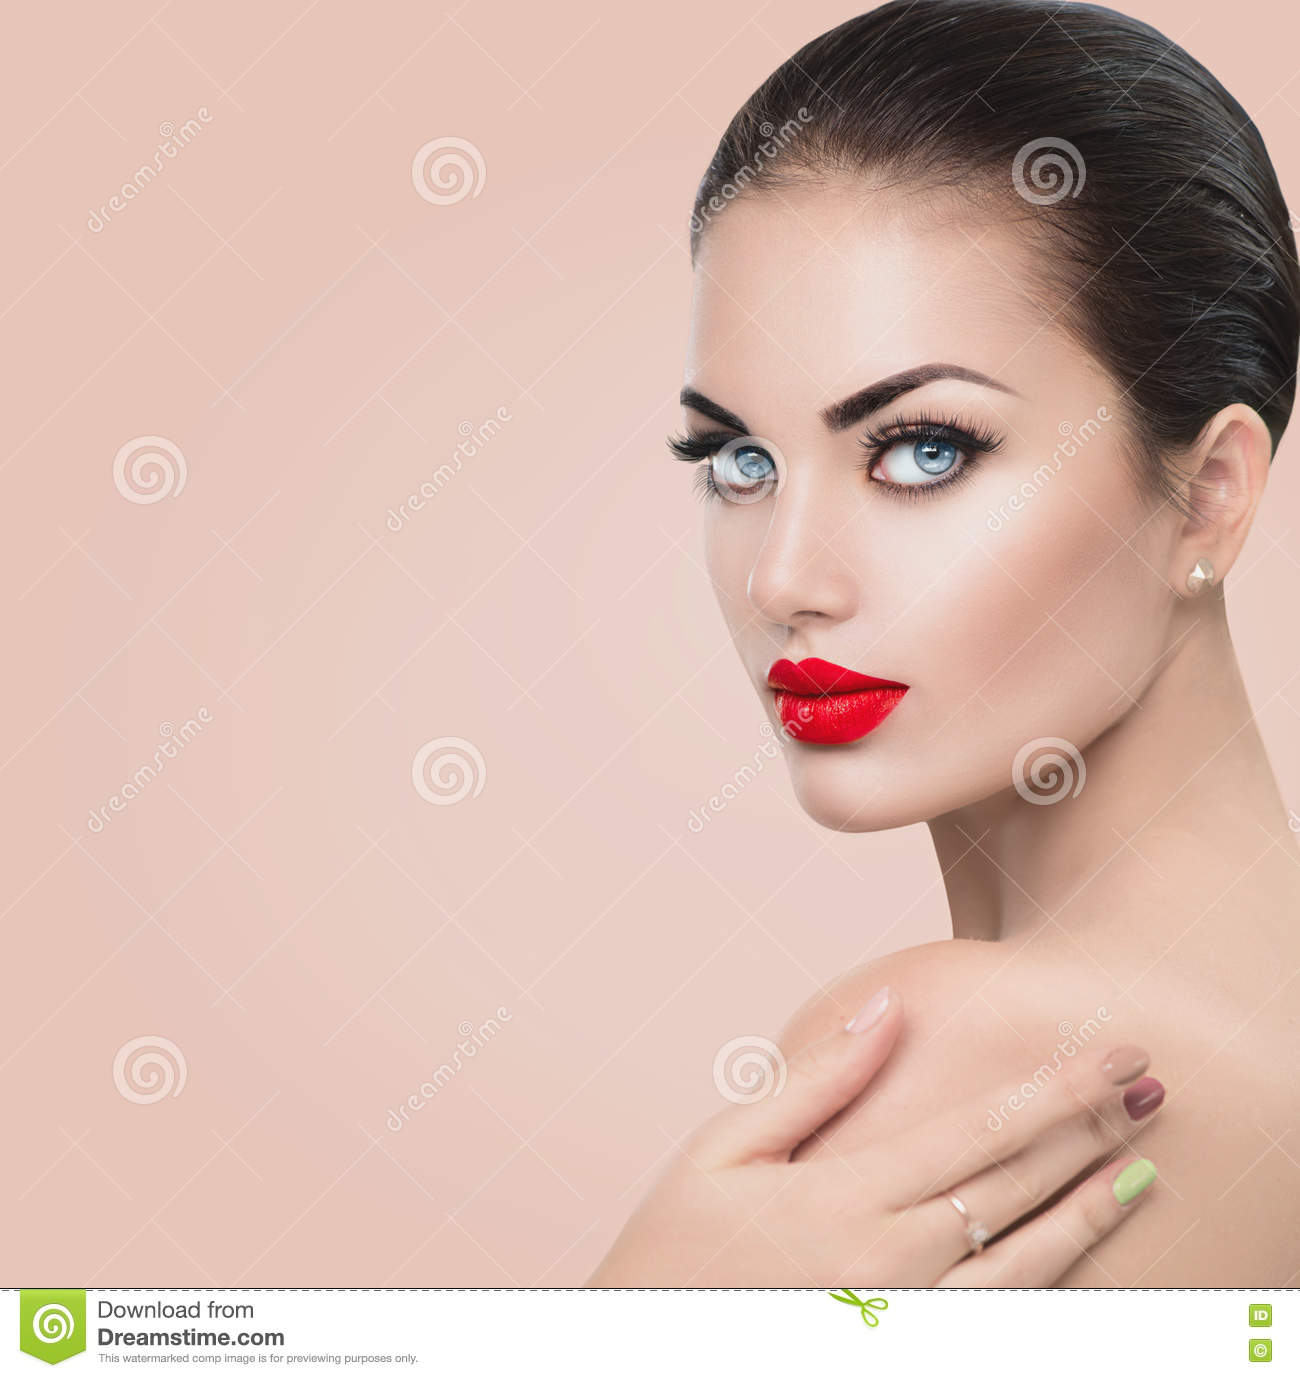 Beauty Fashion Model Woman Stock Photo